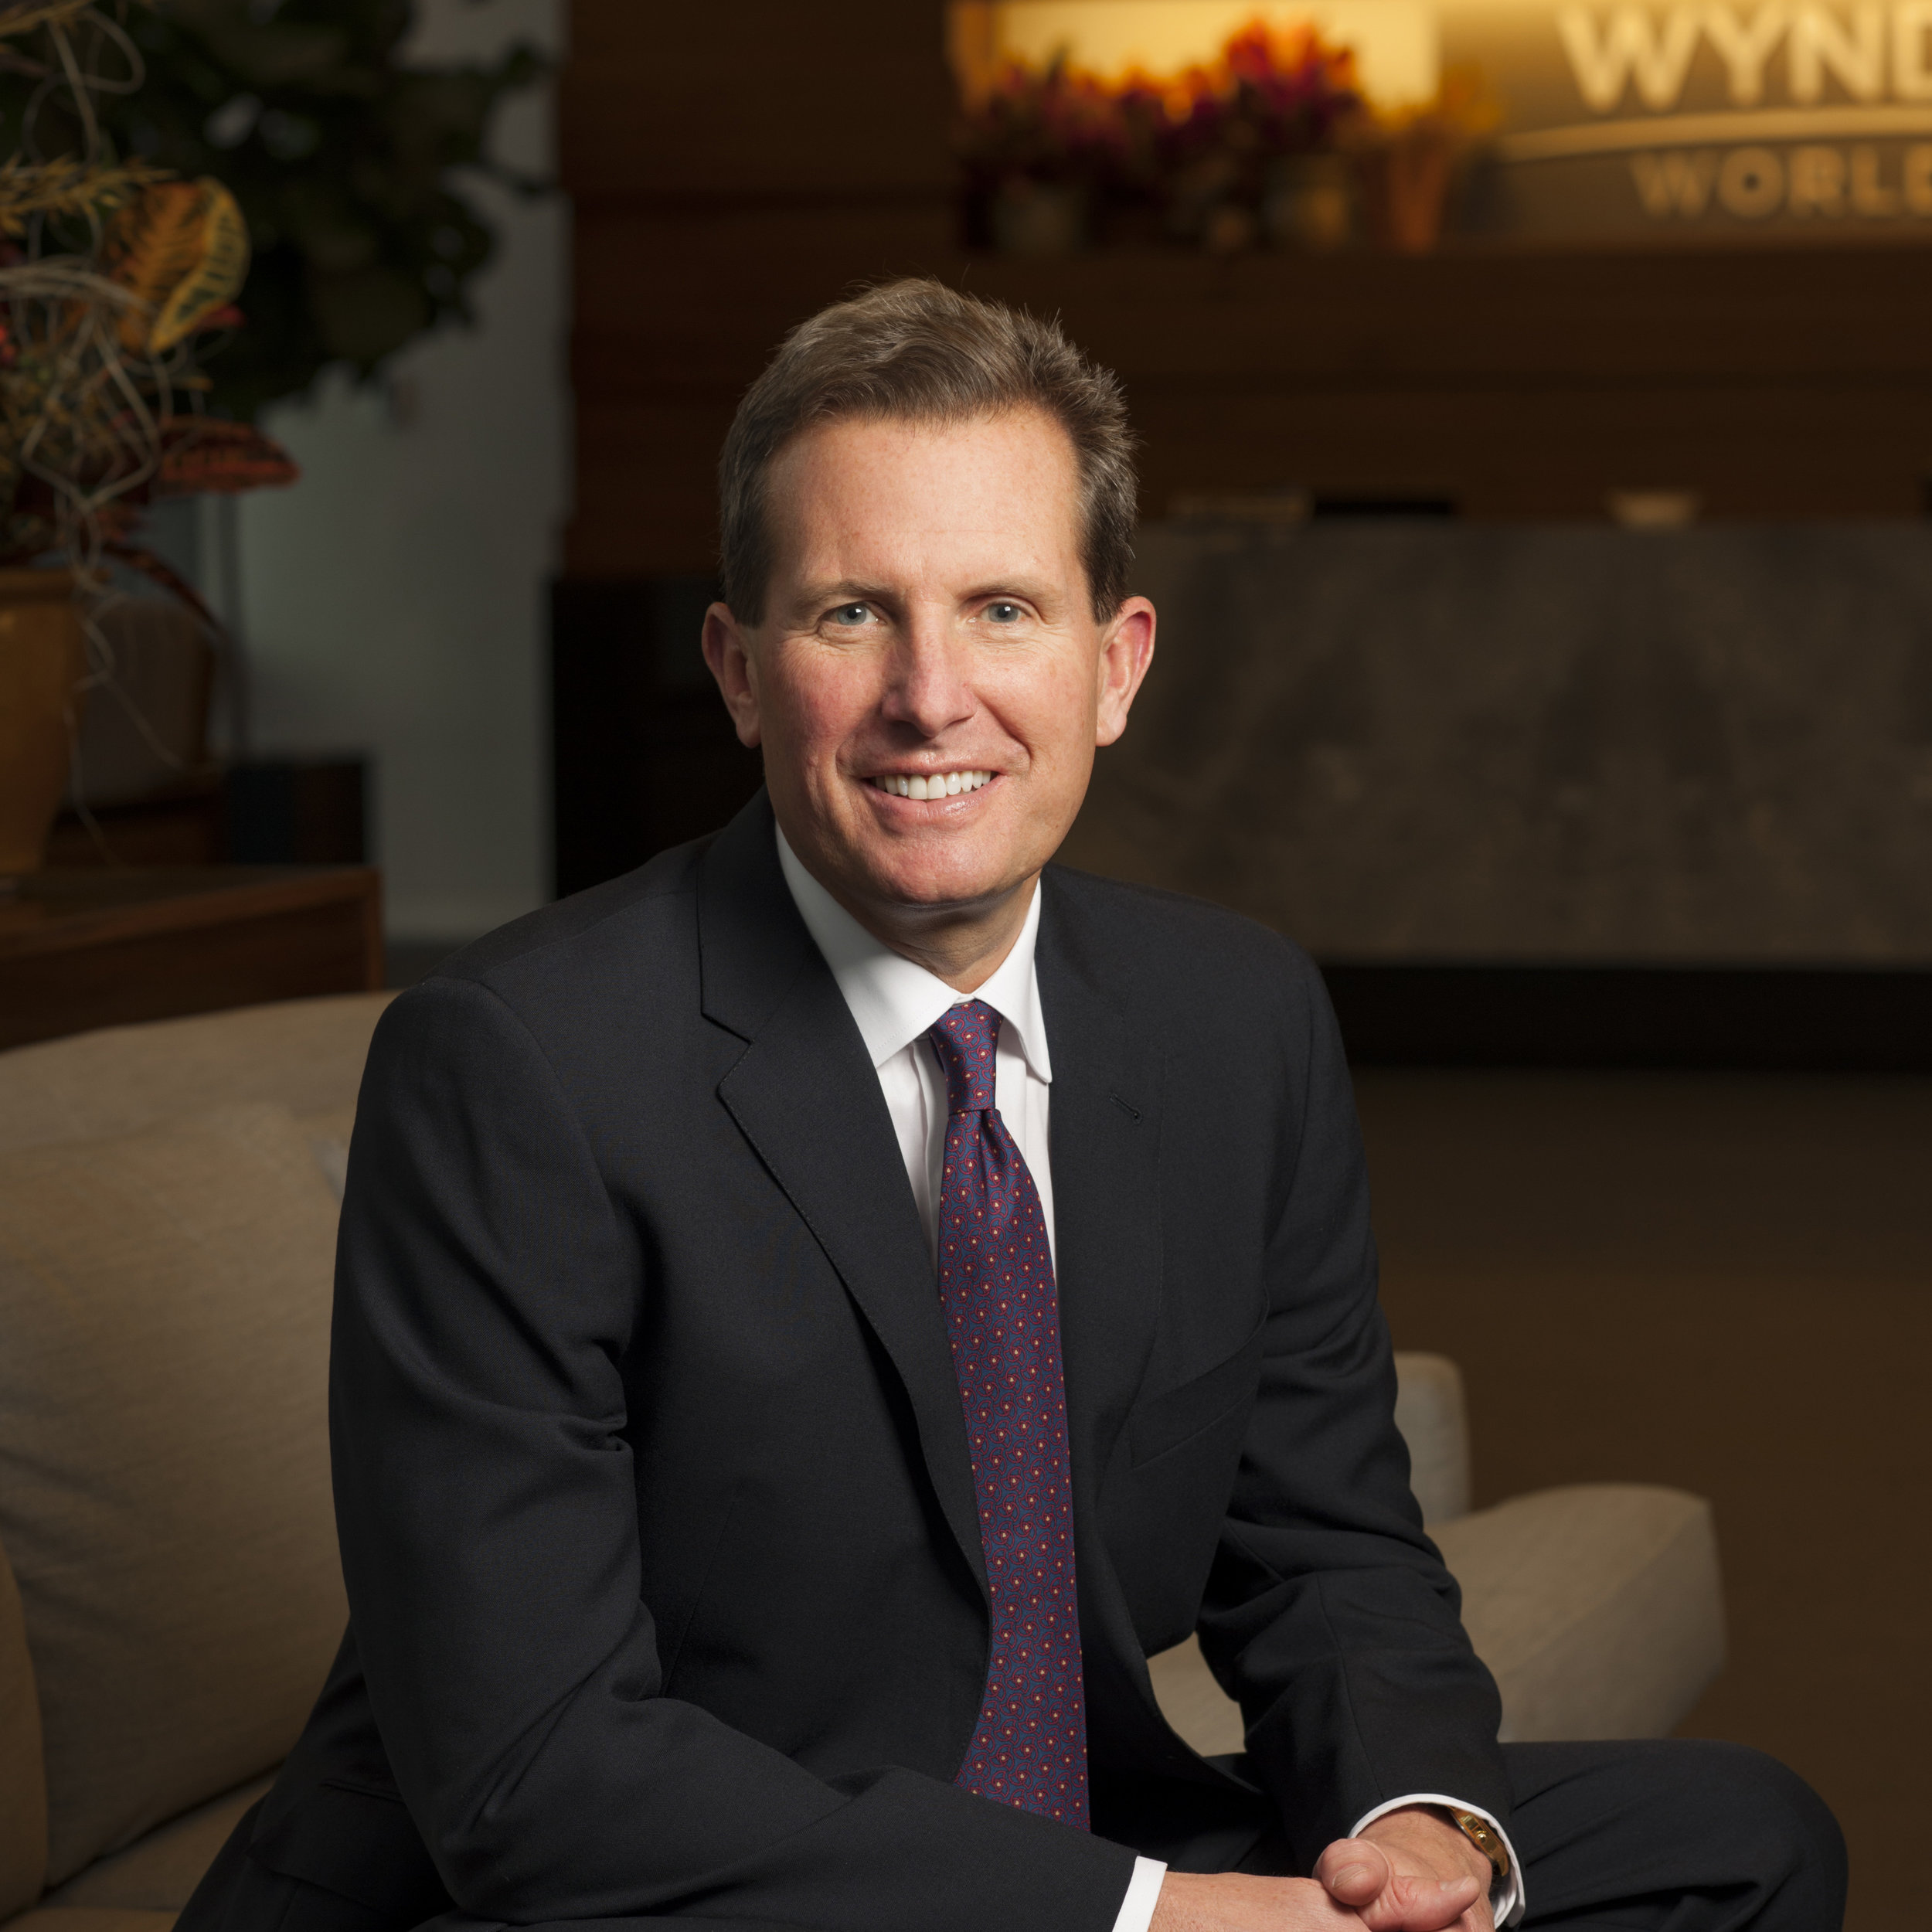 Geoff Balloti - CEO & President of Hotel Division at Wyndham Worldwide Corporation